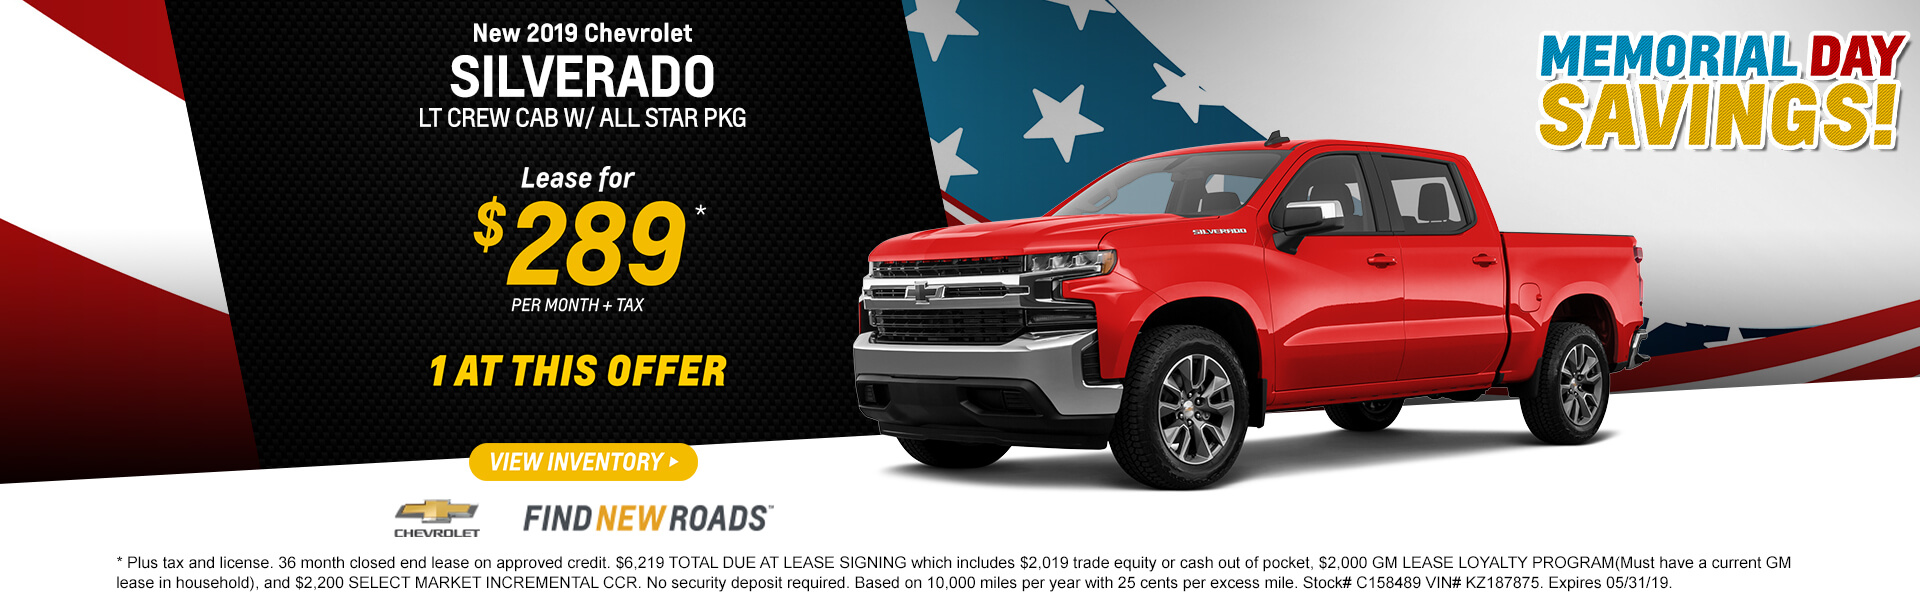 2019 CHEVROLET SILVERADO LT CREW CAB W/ ALL STAR PKG Lease for $289 per month. Plus tax and license. 36 month closed end lease on approved credit. $6,219 TOTAL DUE AT LEASE SIGNING which includes $2,019 trade equity or cash out of pocket, $2,000 GM LEASE LOYALTY PROGRAM(Must have a current GM lease in household), and $2,200 SELECT MARKET INCREMENTAL CCR. No security deposit required. Based on 10,000 miles per year with 25 cents per excess mile. Stock# C158489 VIN# KZ187875. Expires 05/31/19.